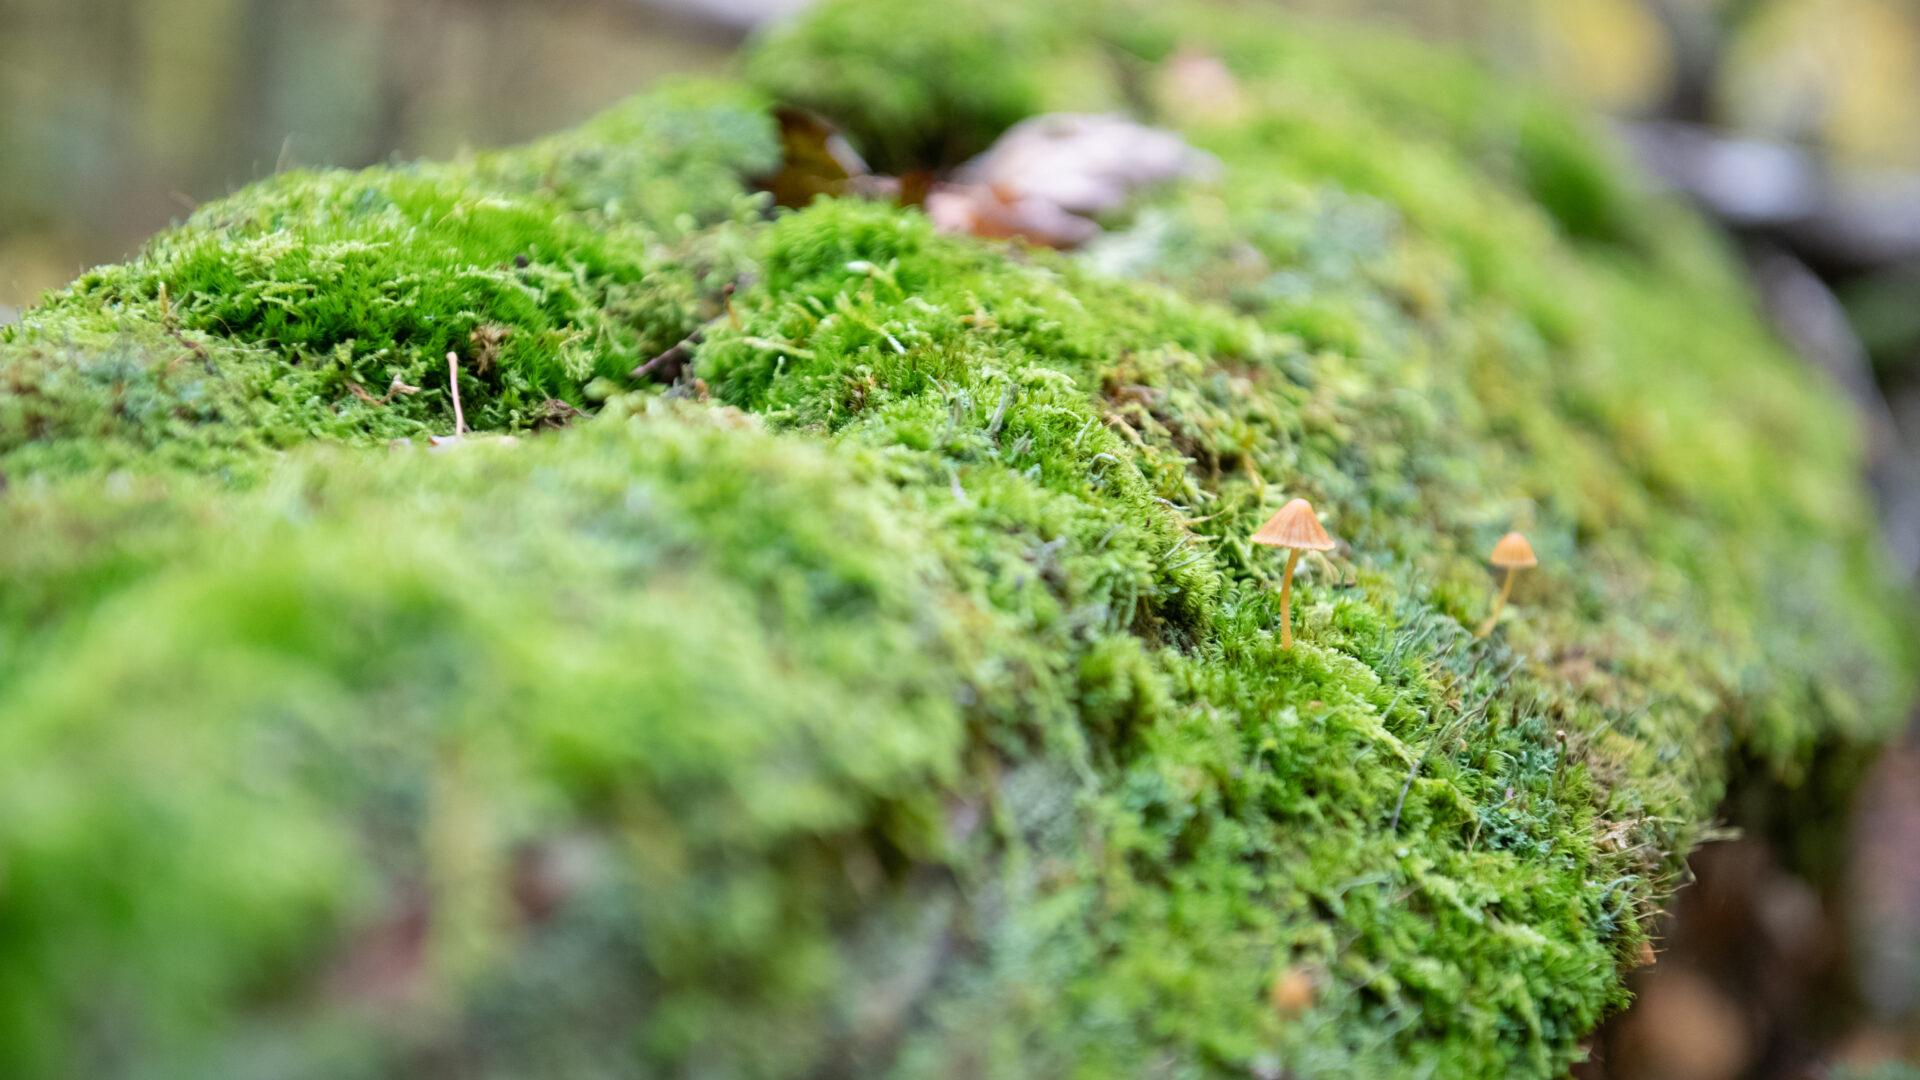 close up of bright green moss growing on a log with tiny mushrooms